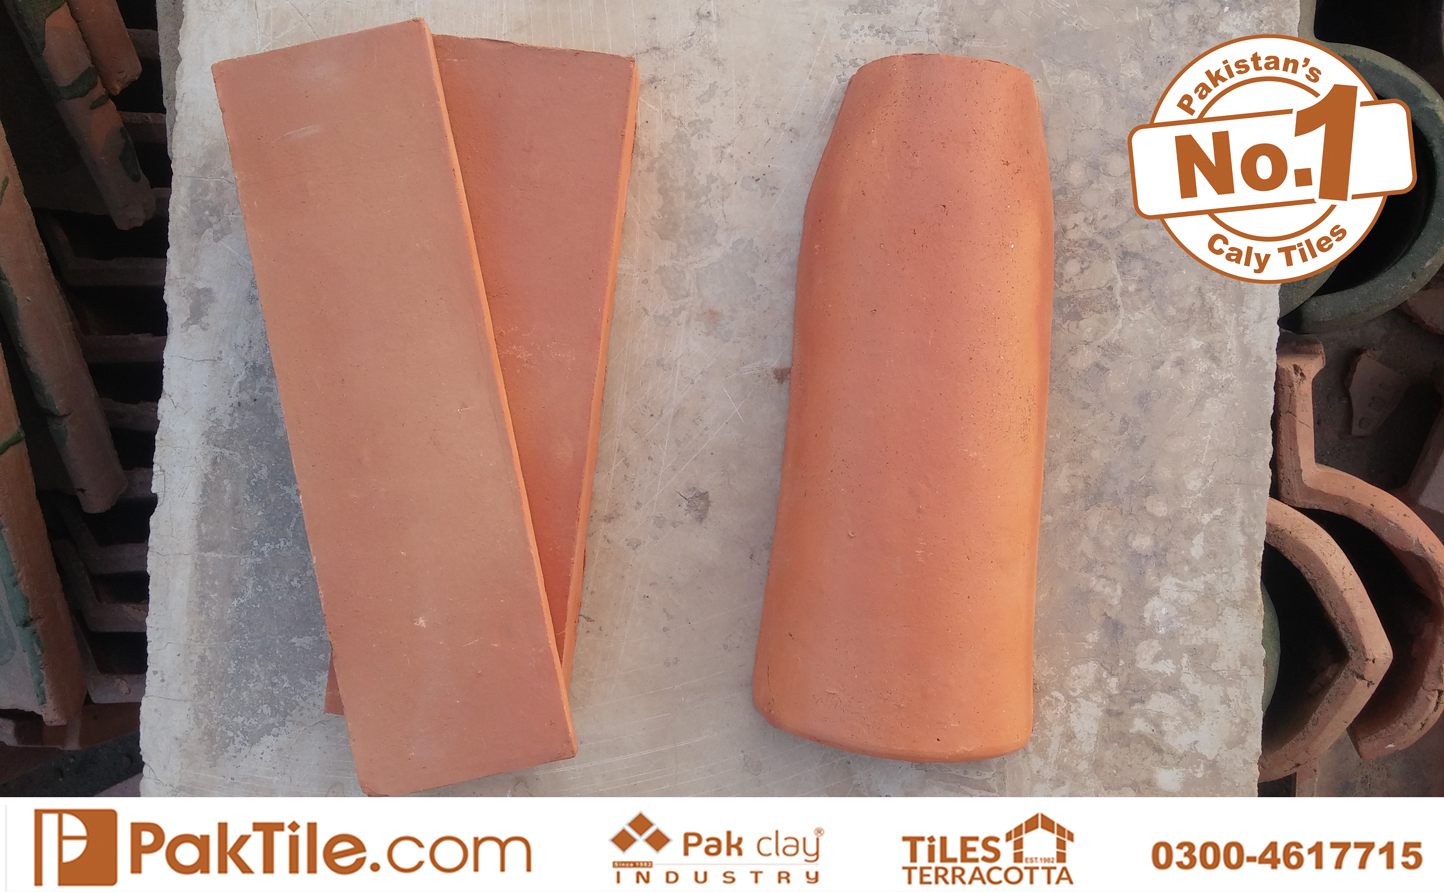 Pak clay tiles Red split face wall cladding tiles textures images